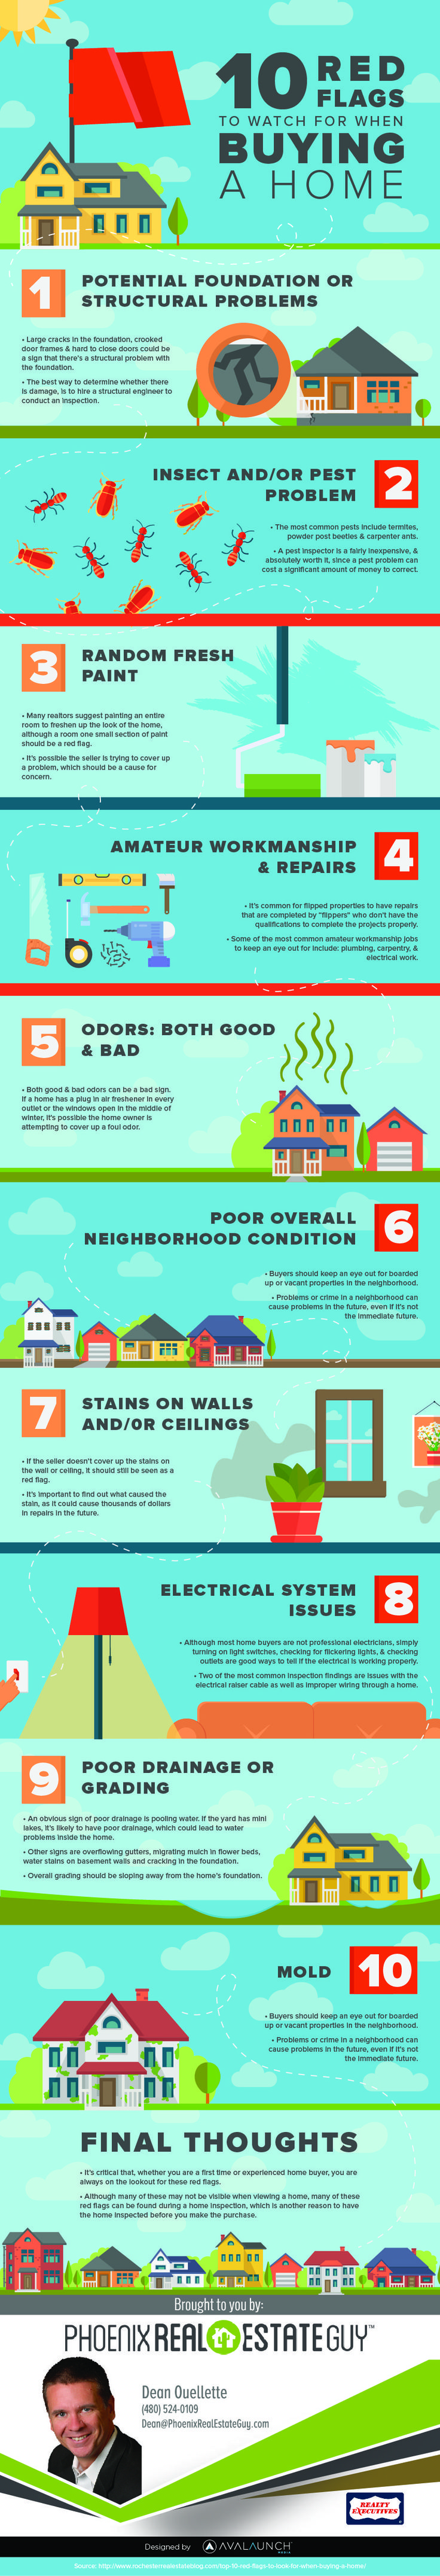 Phoenix home shopping: What to look for when buying a house with Infographic